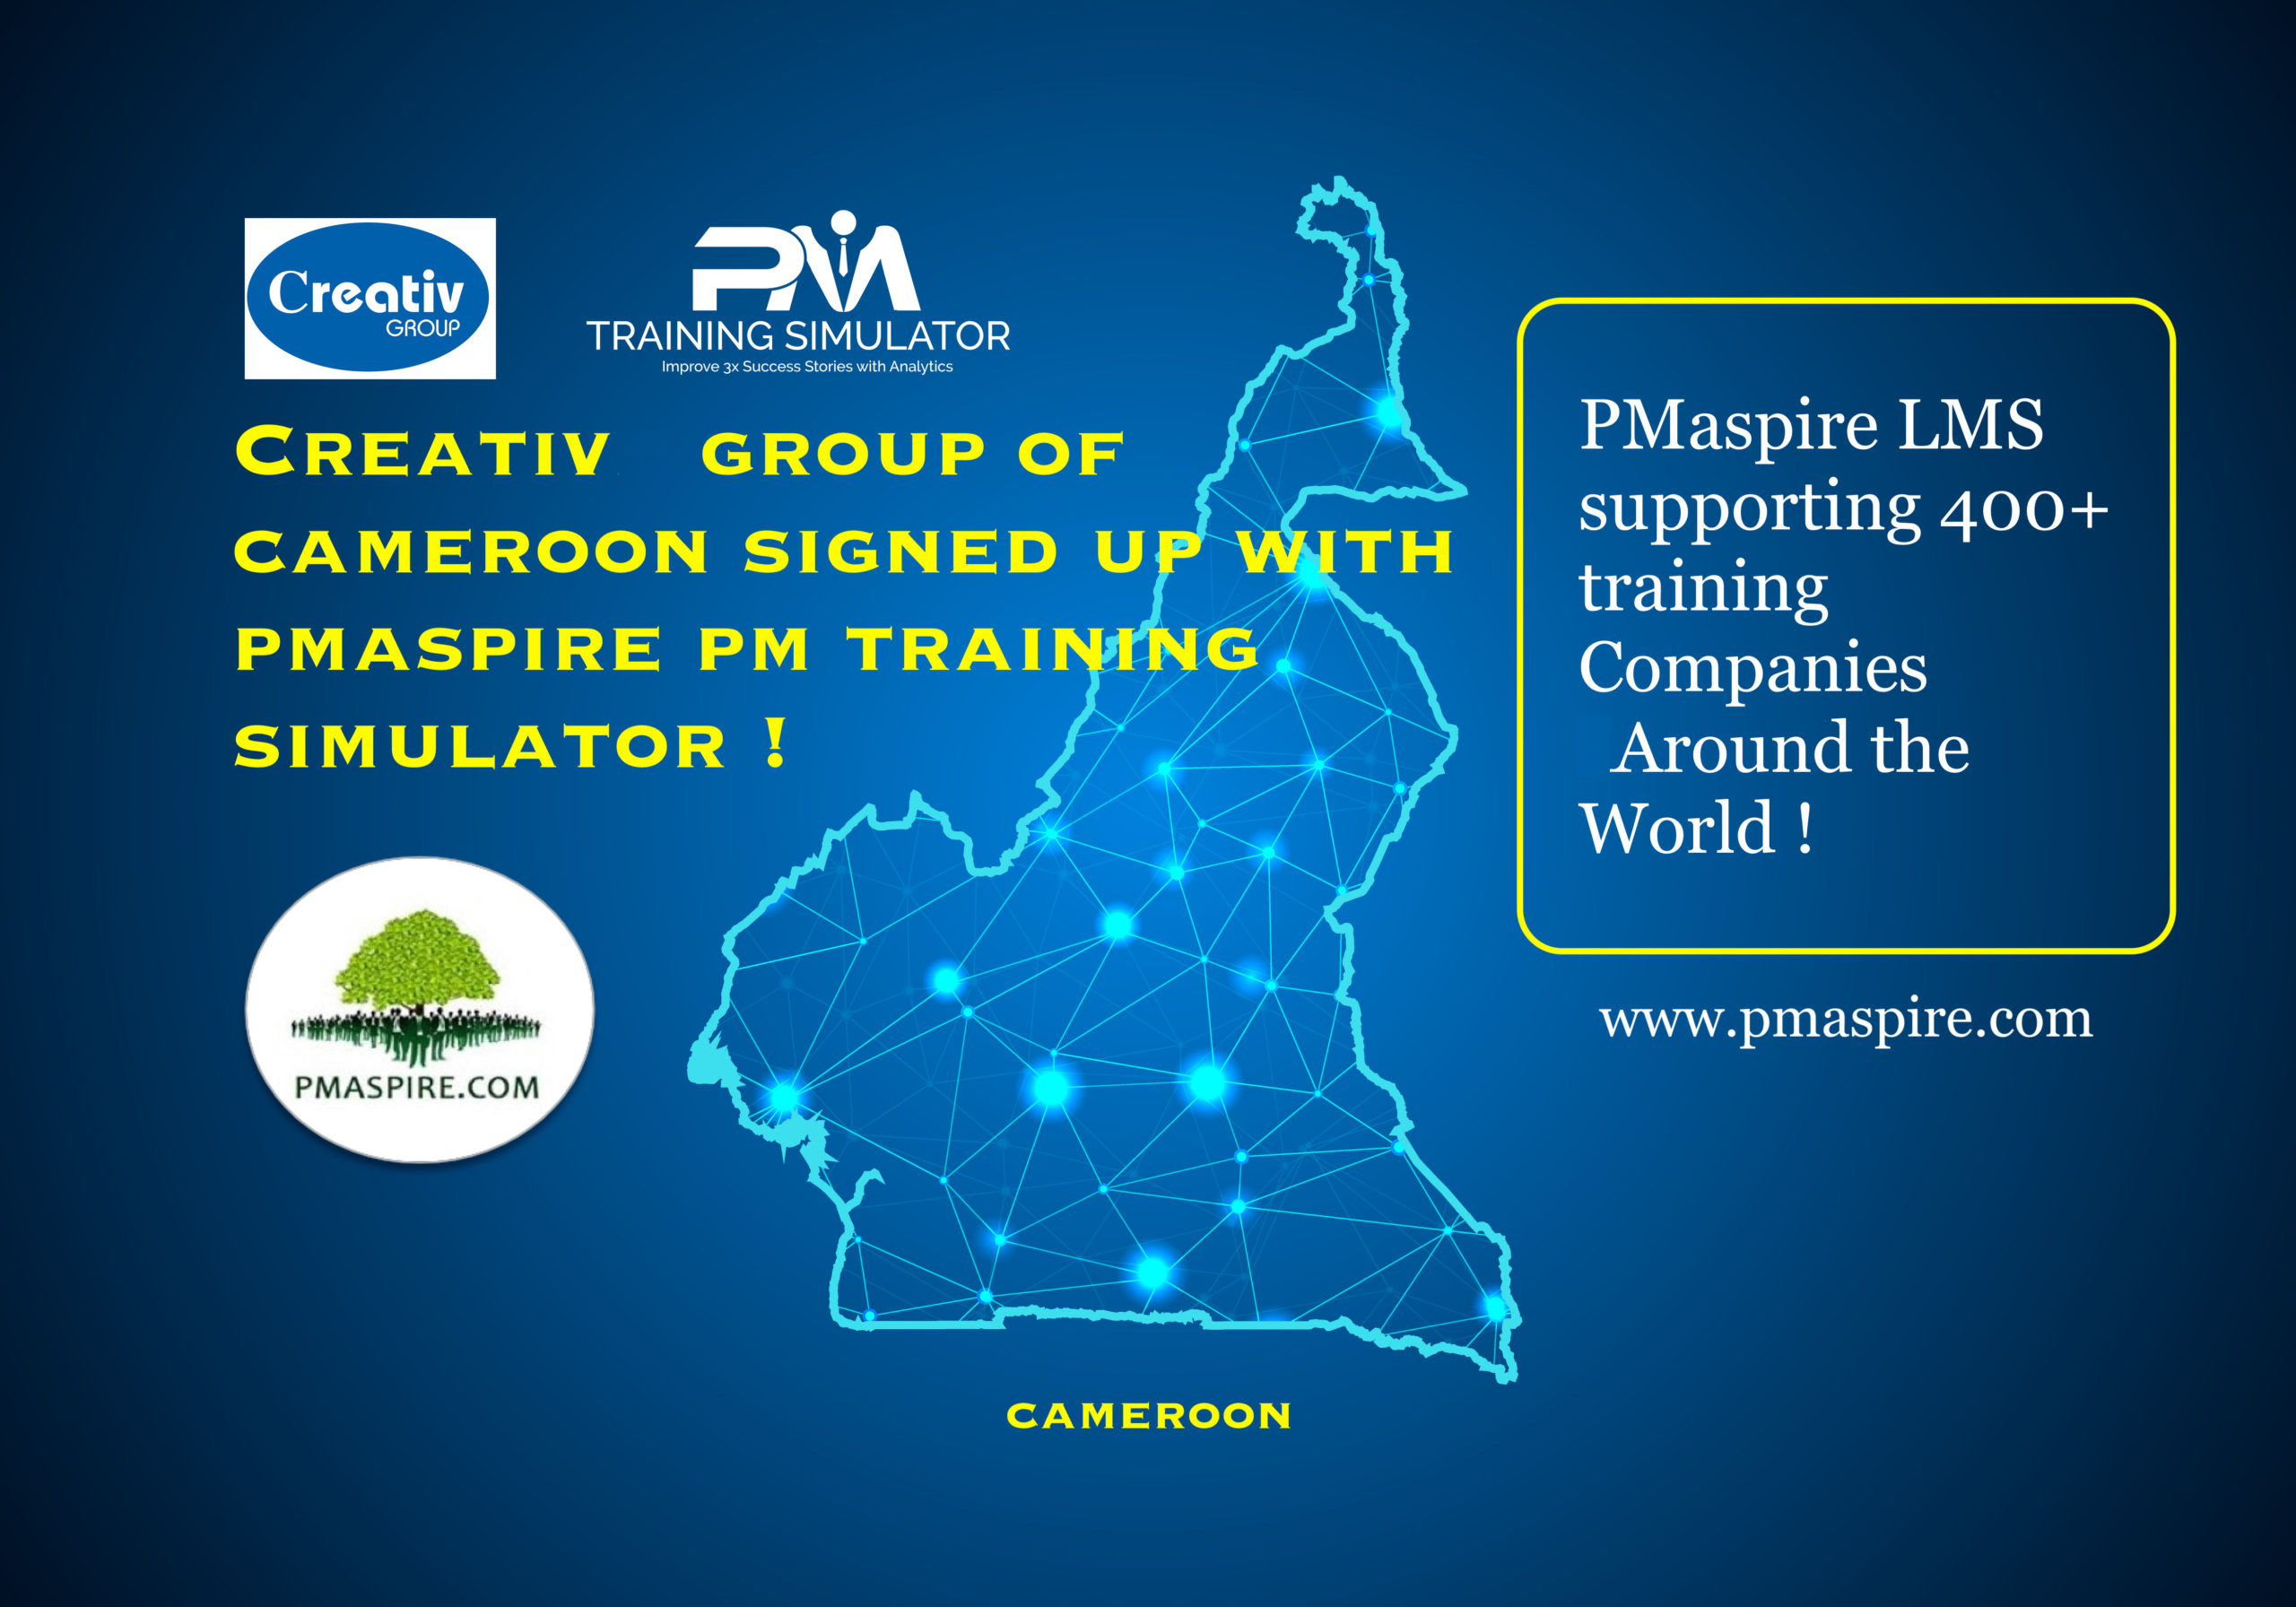 Creativ Group of Cameroon Signed Up with PMaspire